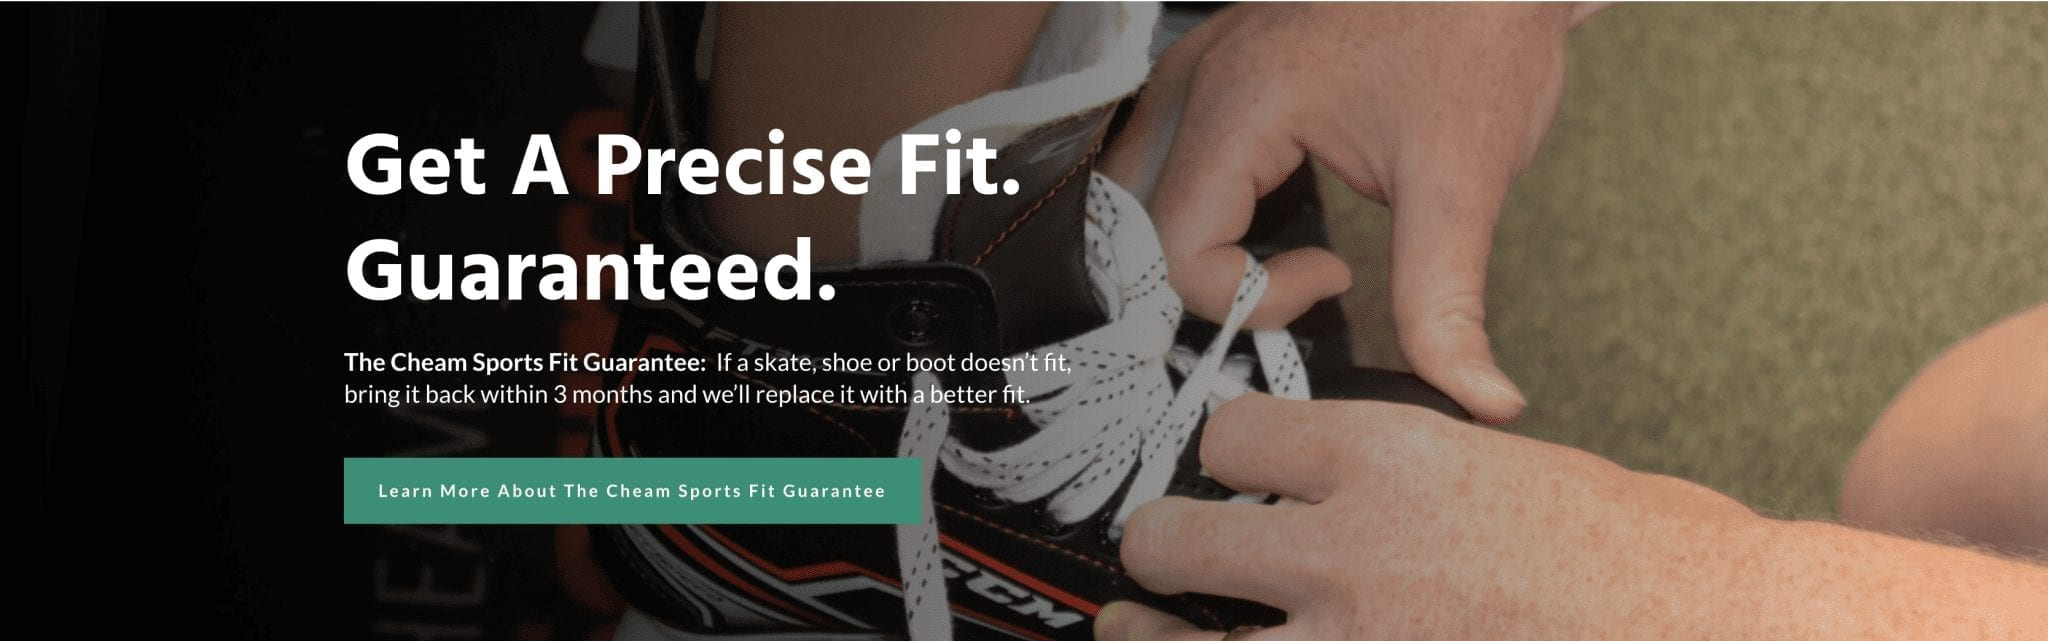 Chilliwack Marketing Case Study - Cheam Sports Fit Guarantee